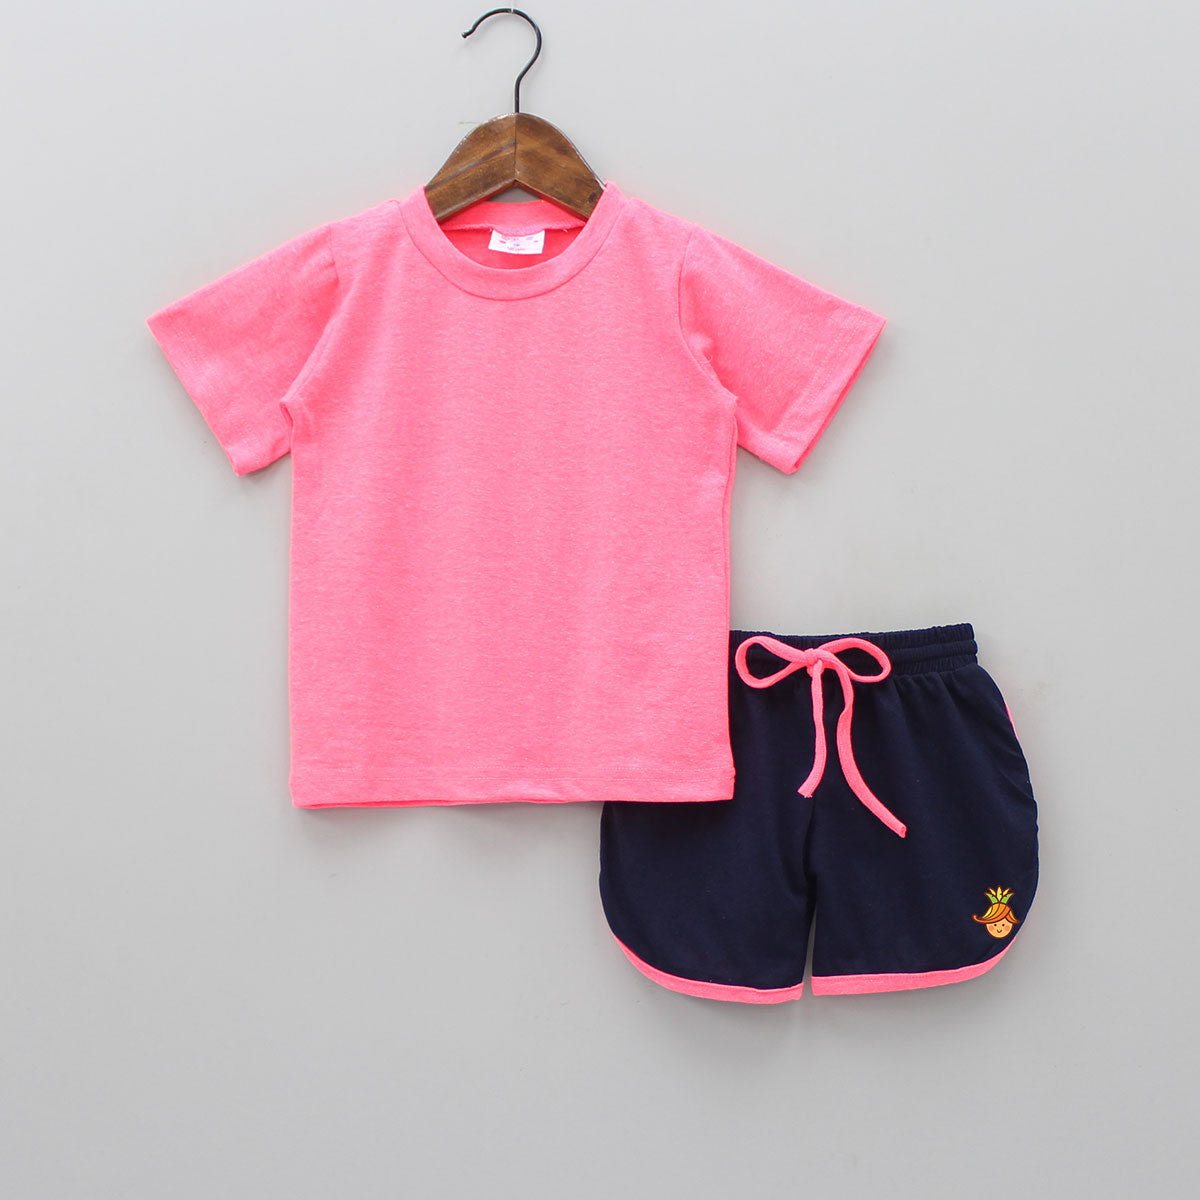 Neon Pink Top And Shorts Set